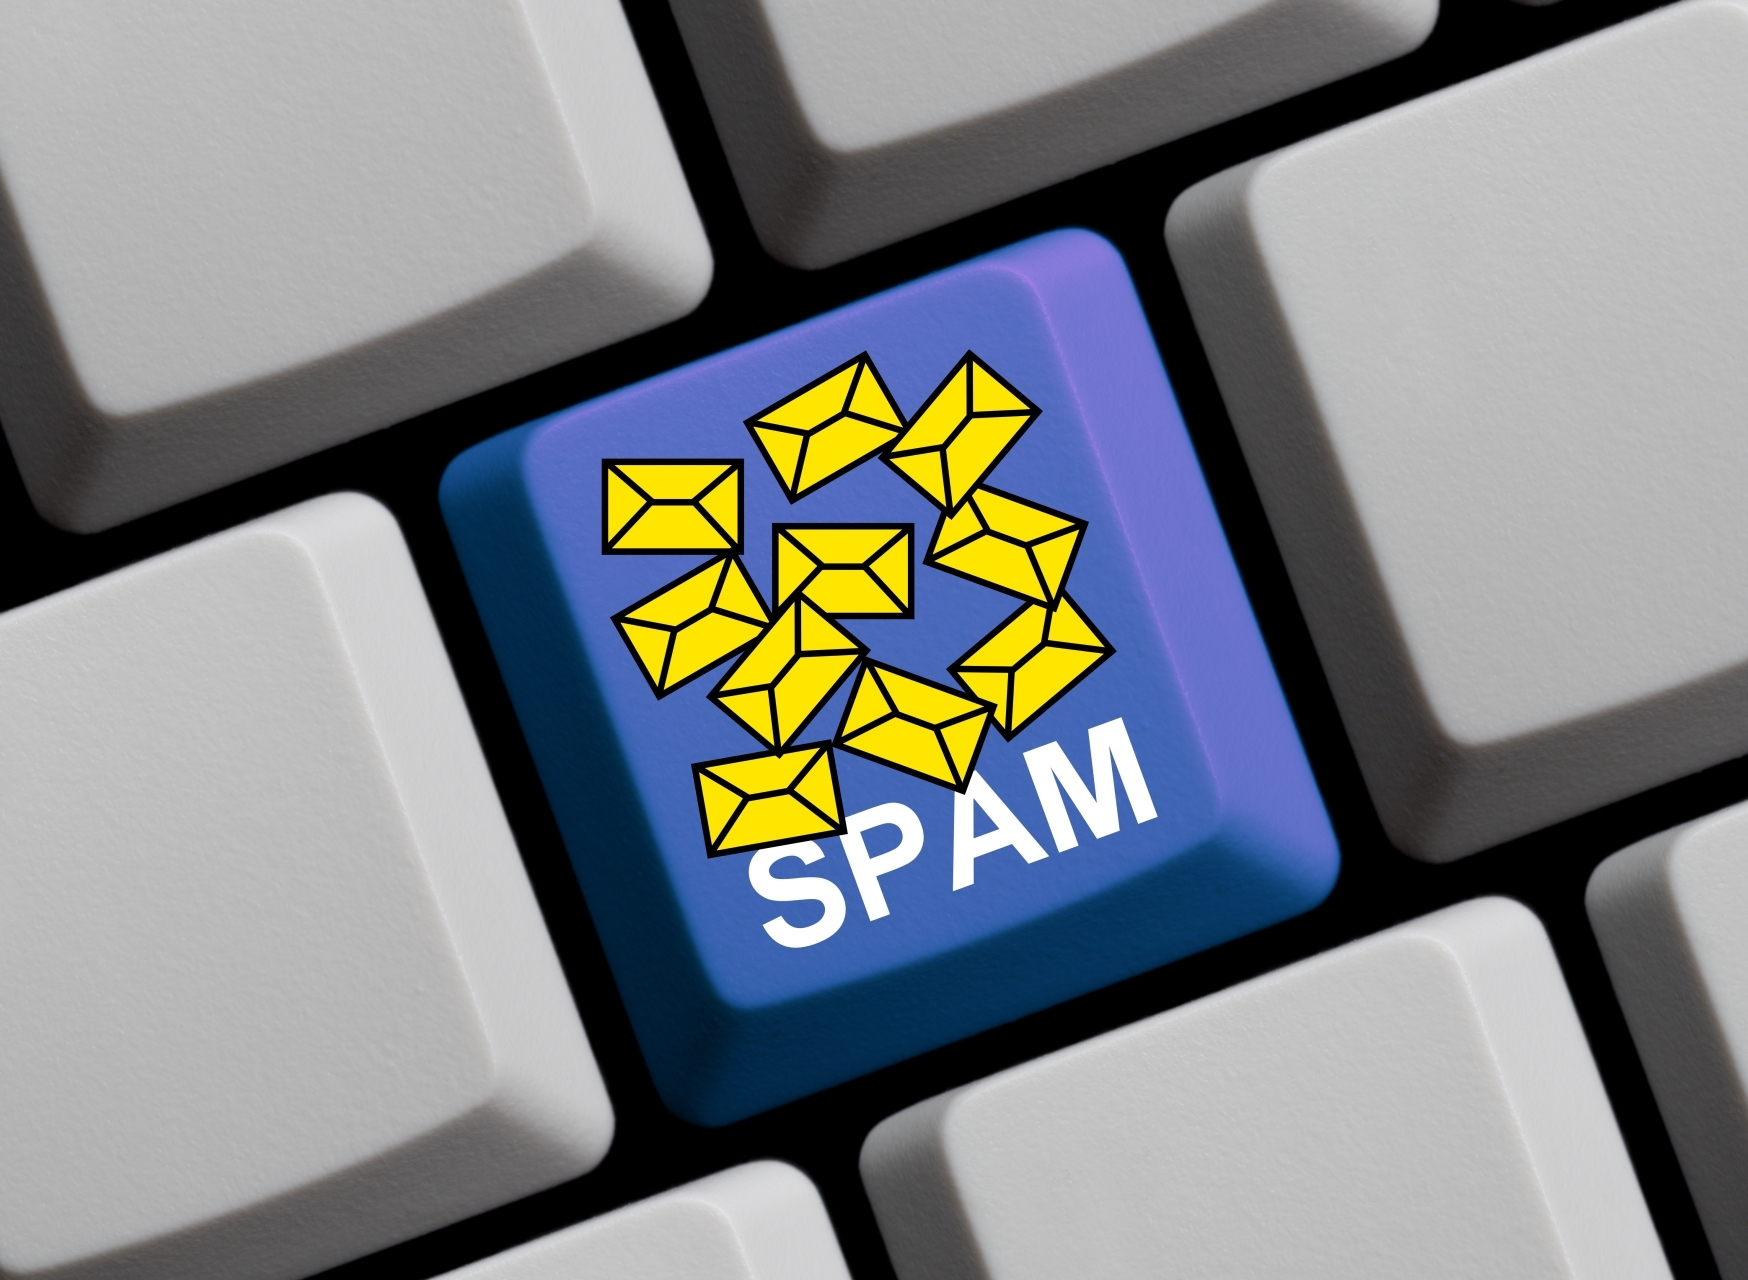 spam malware